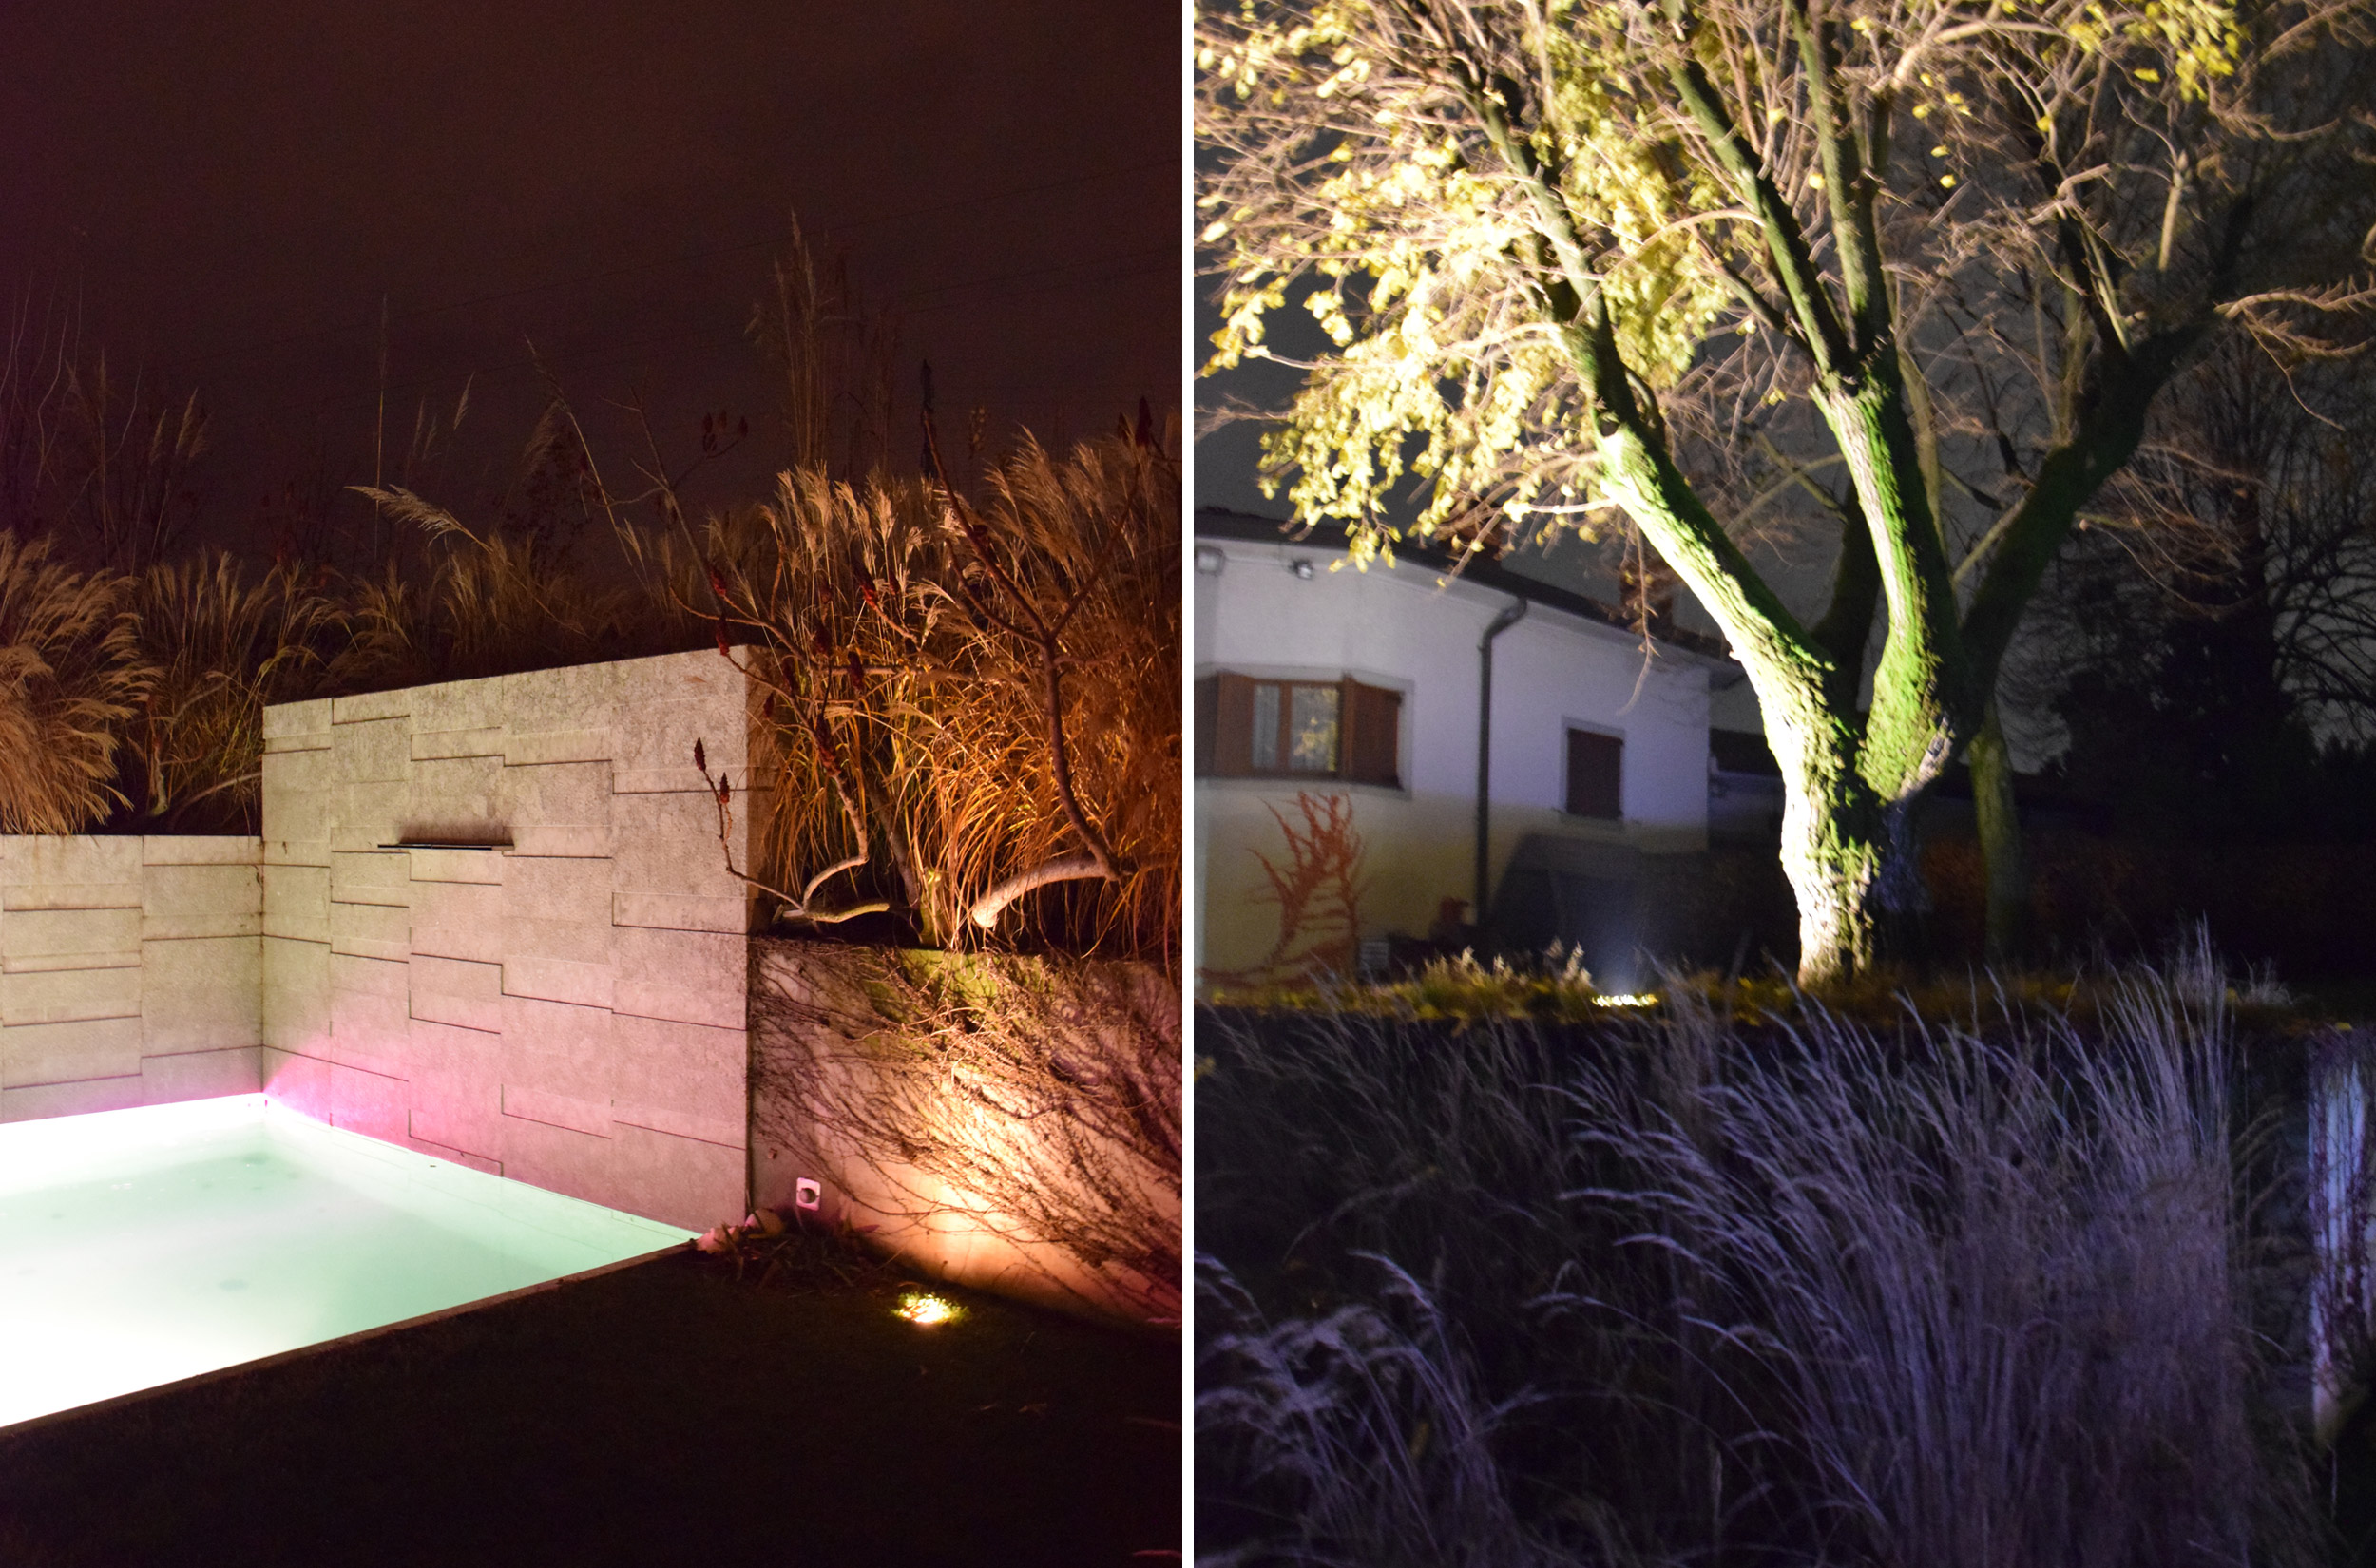 Rhus typhina dissecta, giardino contemporaneo, graminacee, swimmingpool, lights, by night